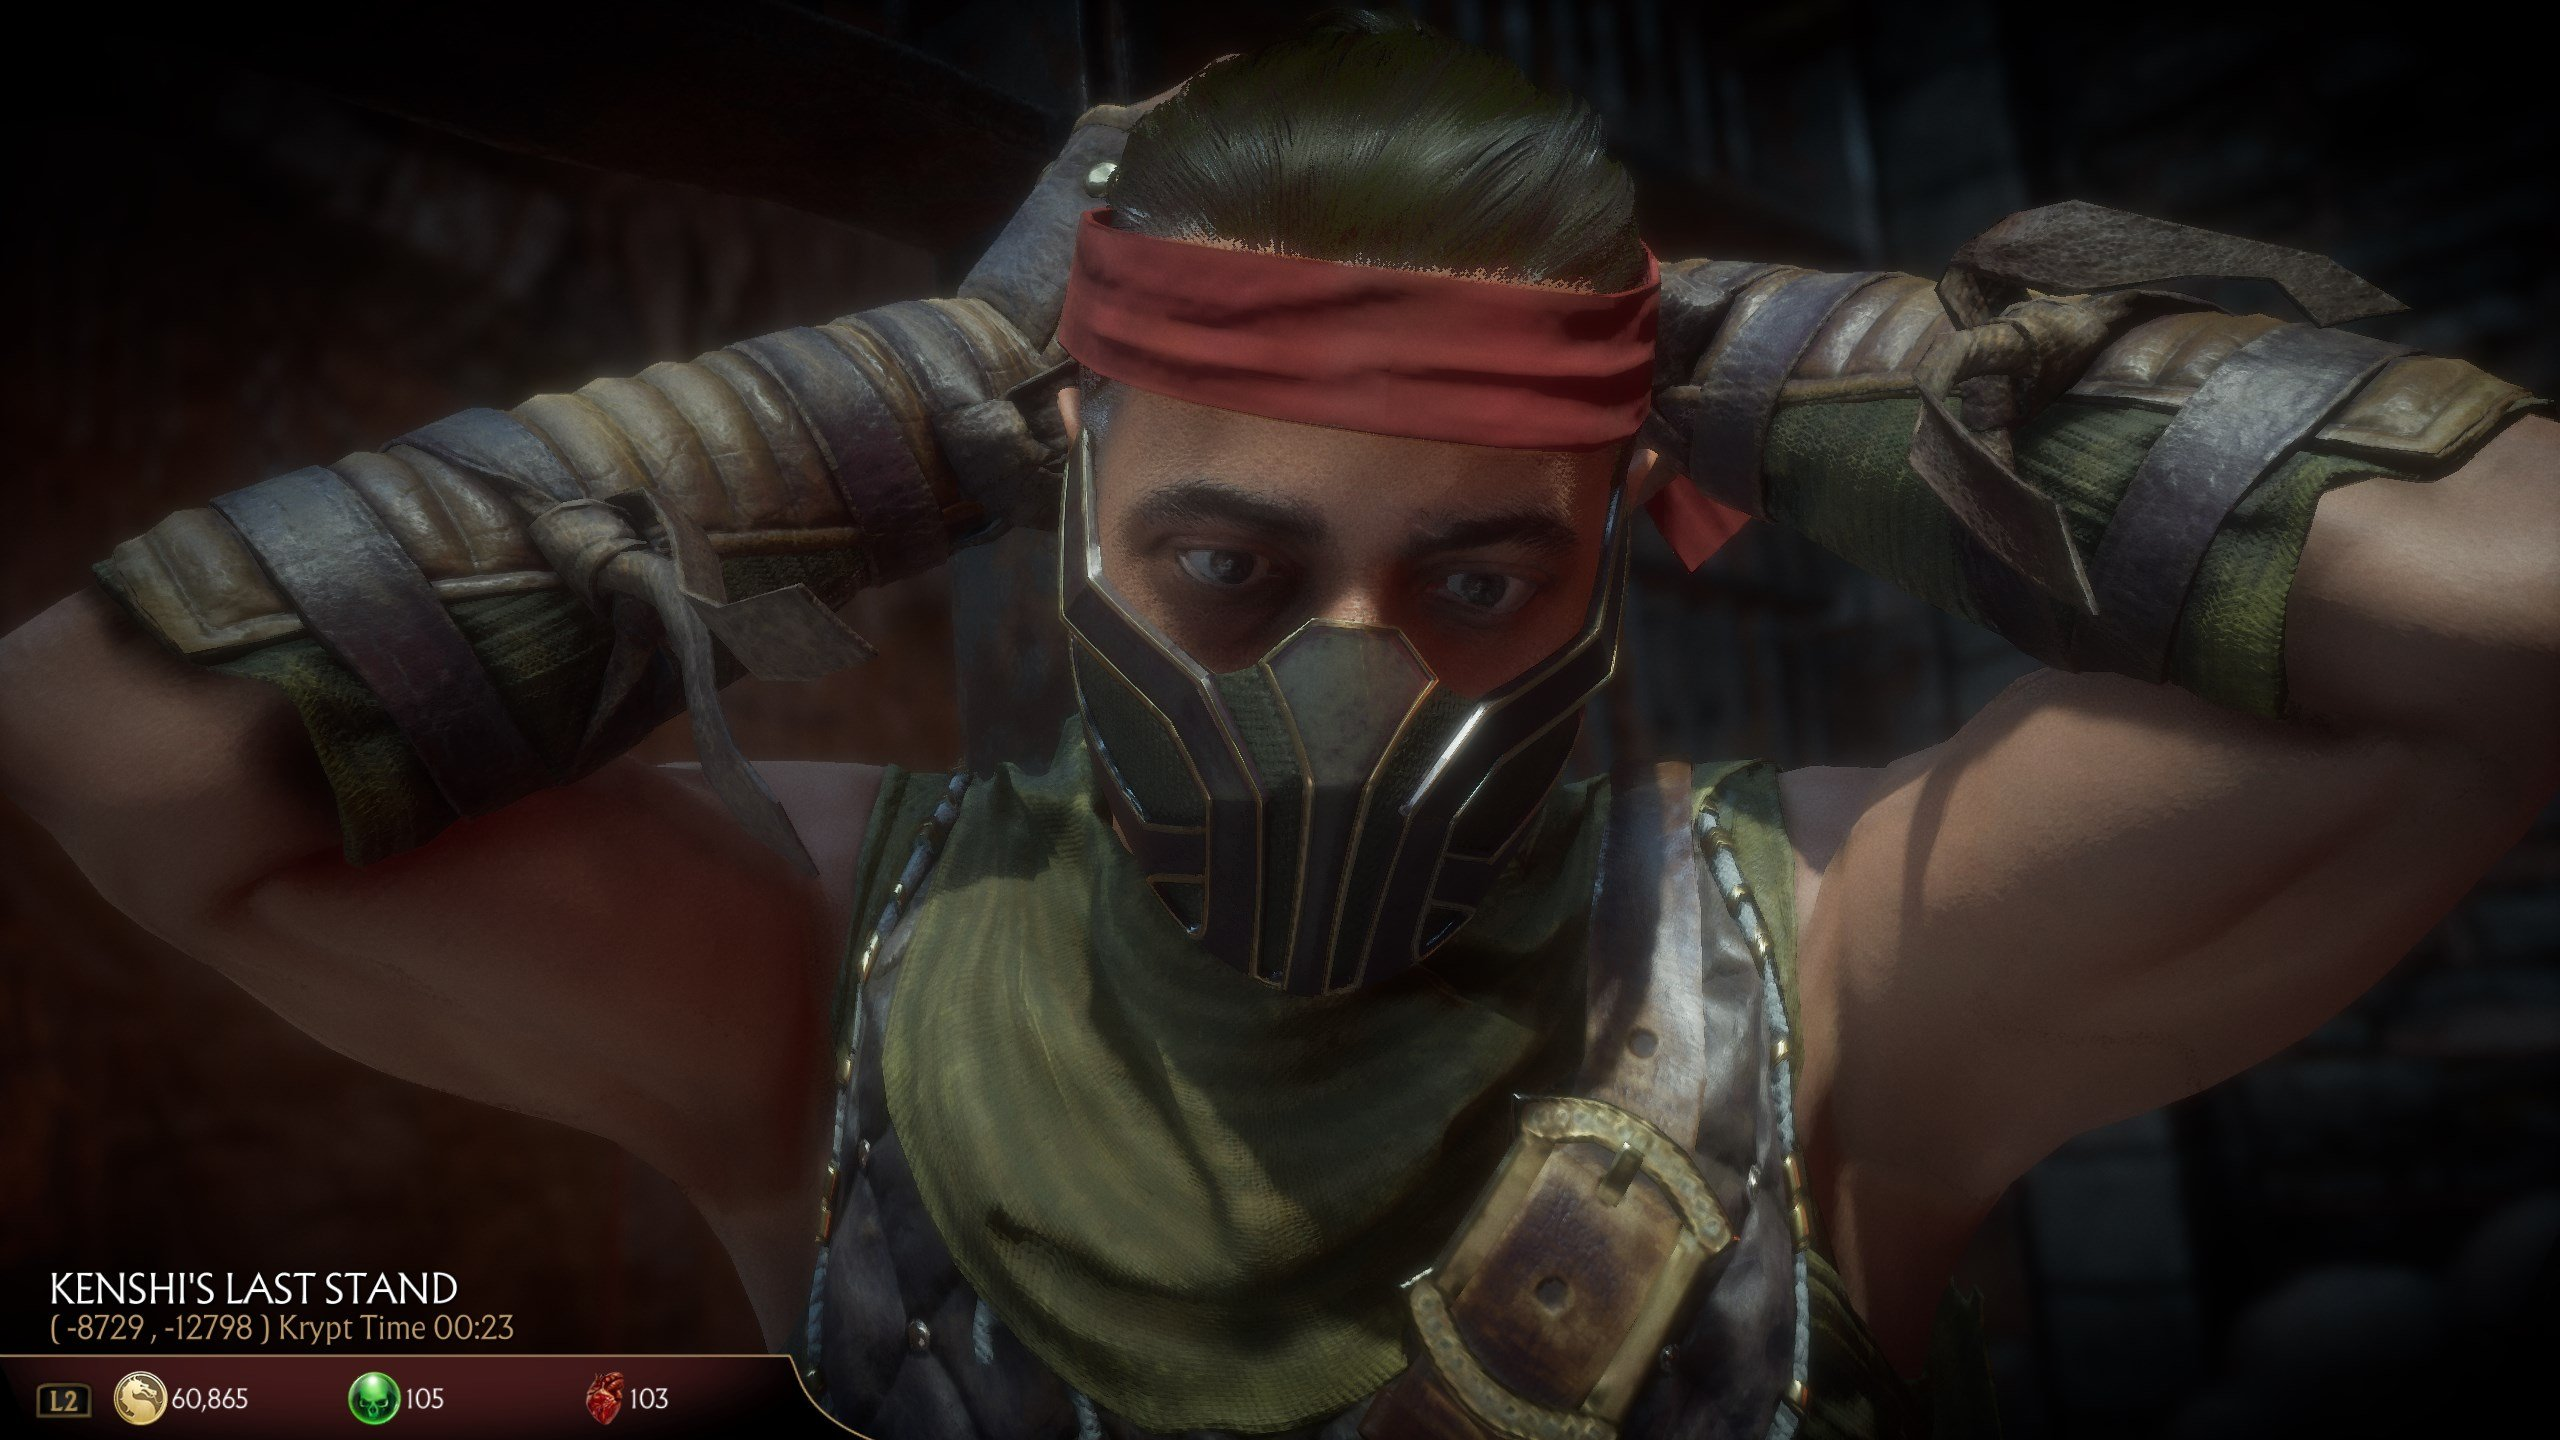 How to get Kenshi's Blindfold in MK11